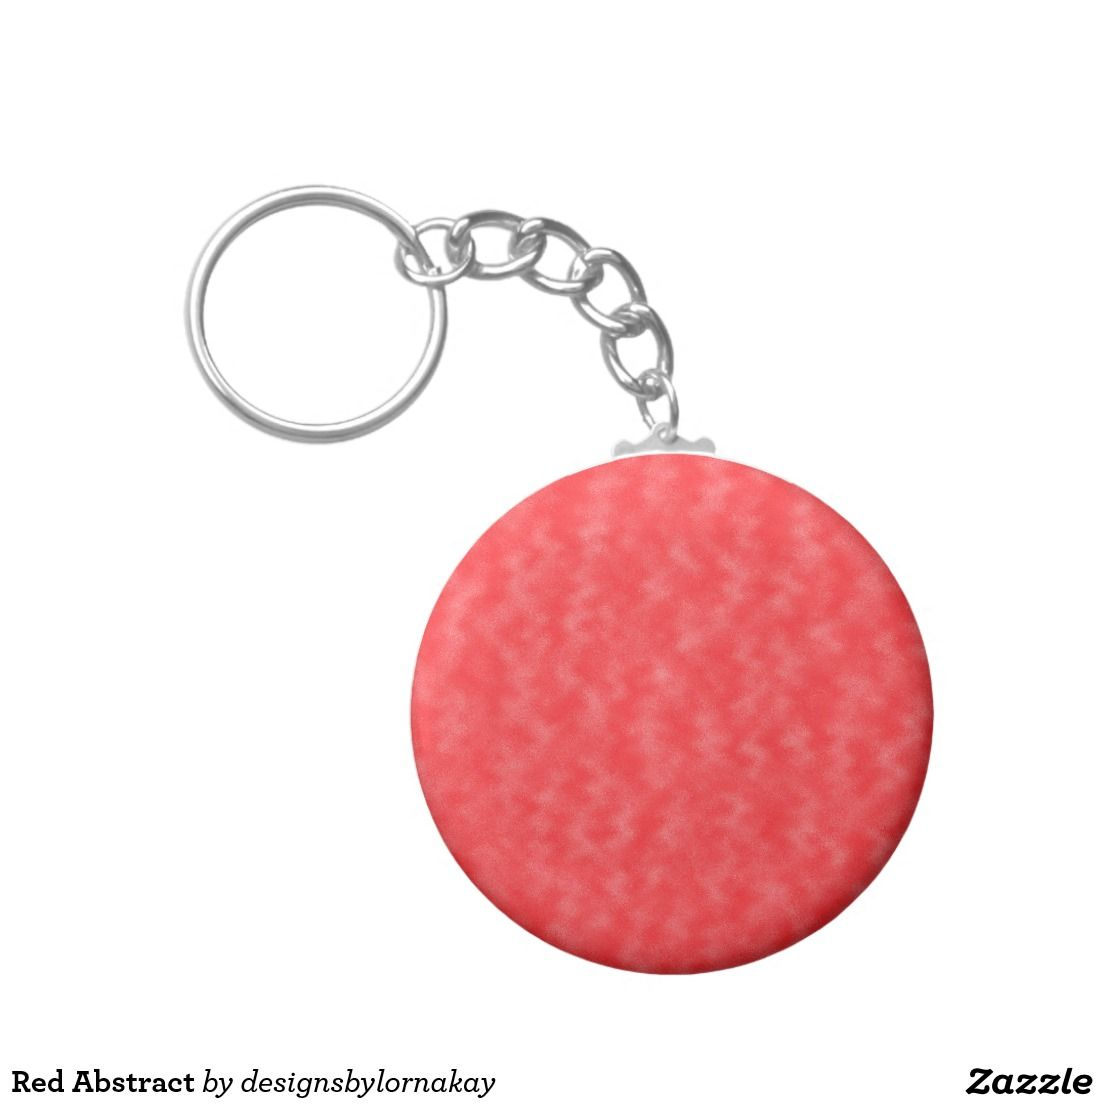 Red Abstract Keychain